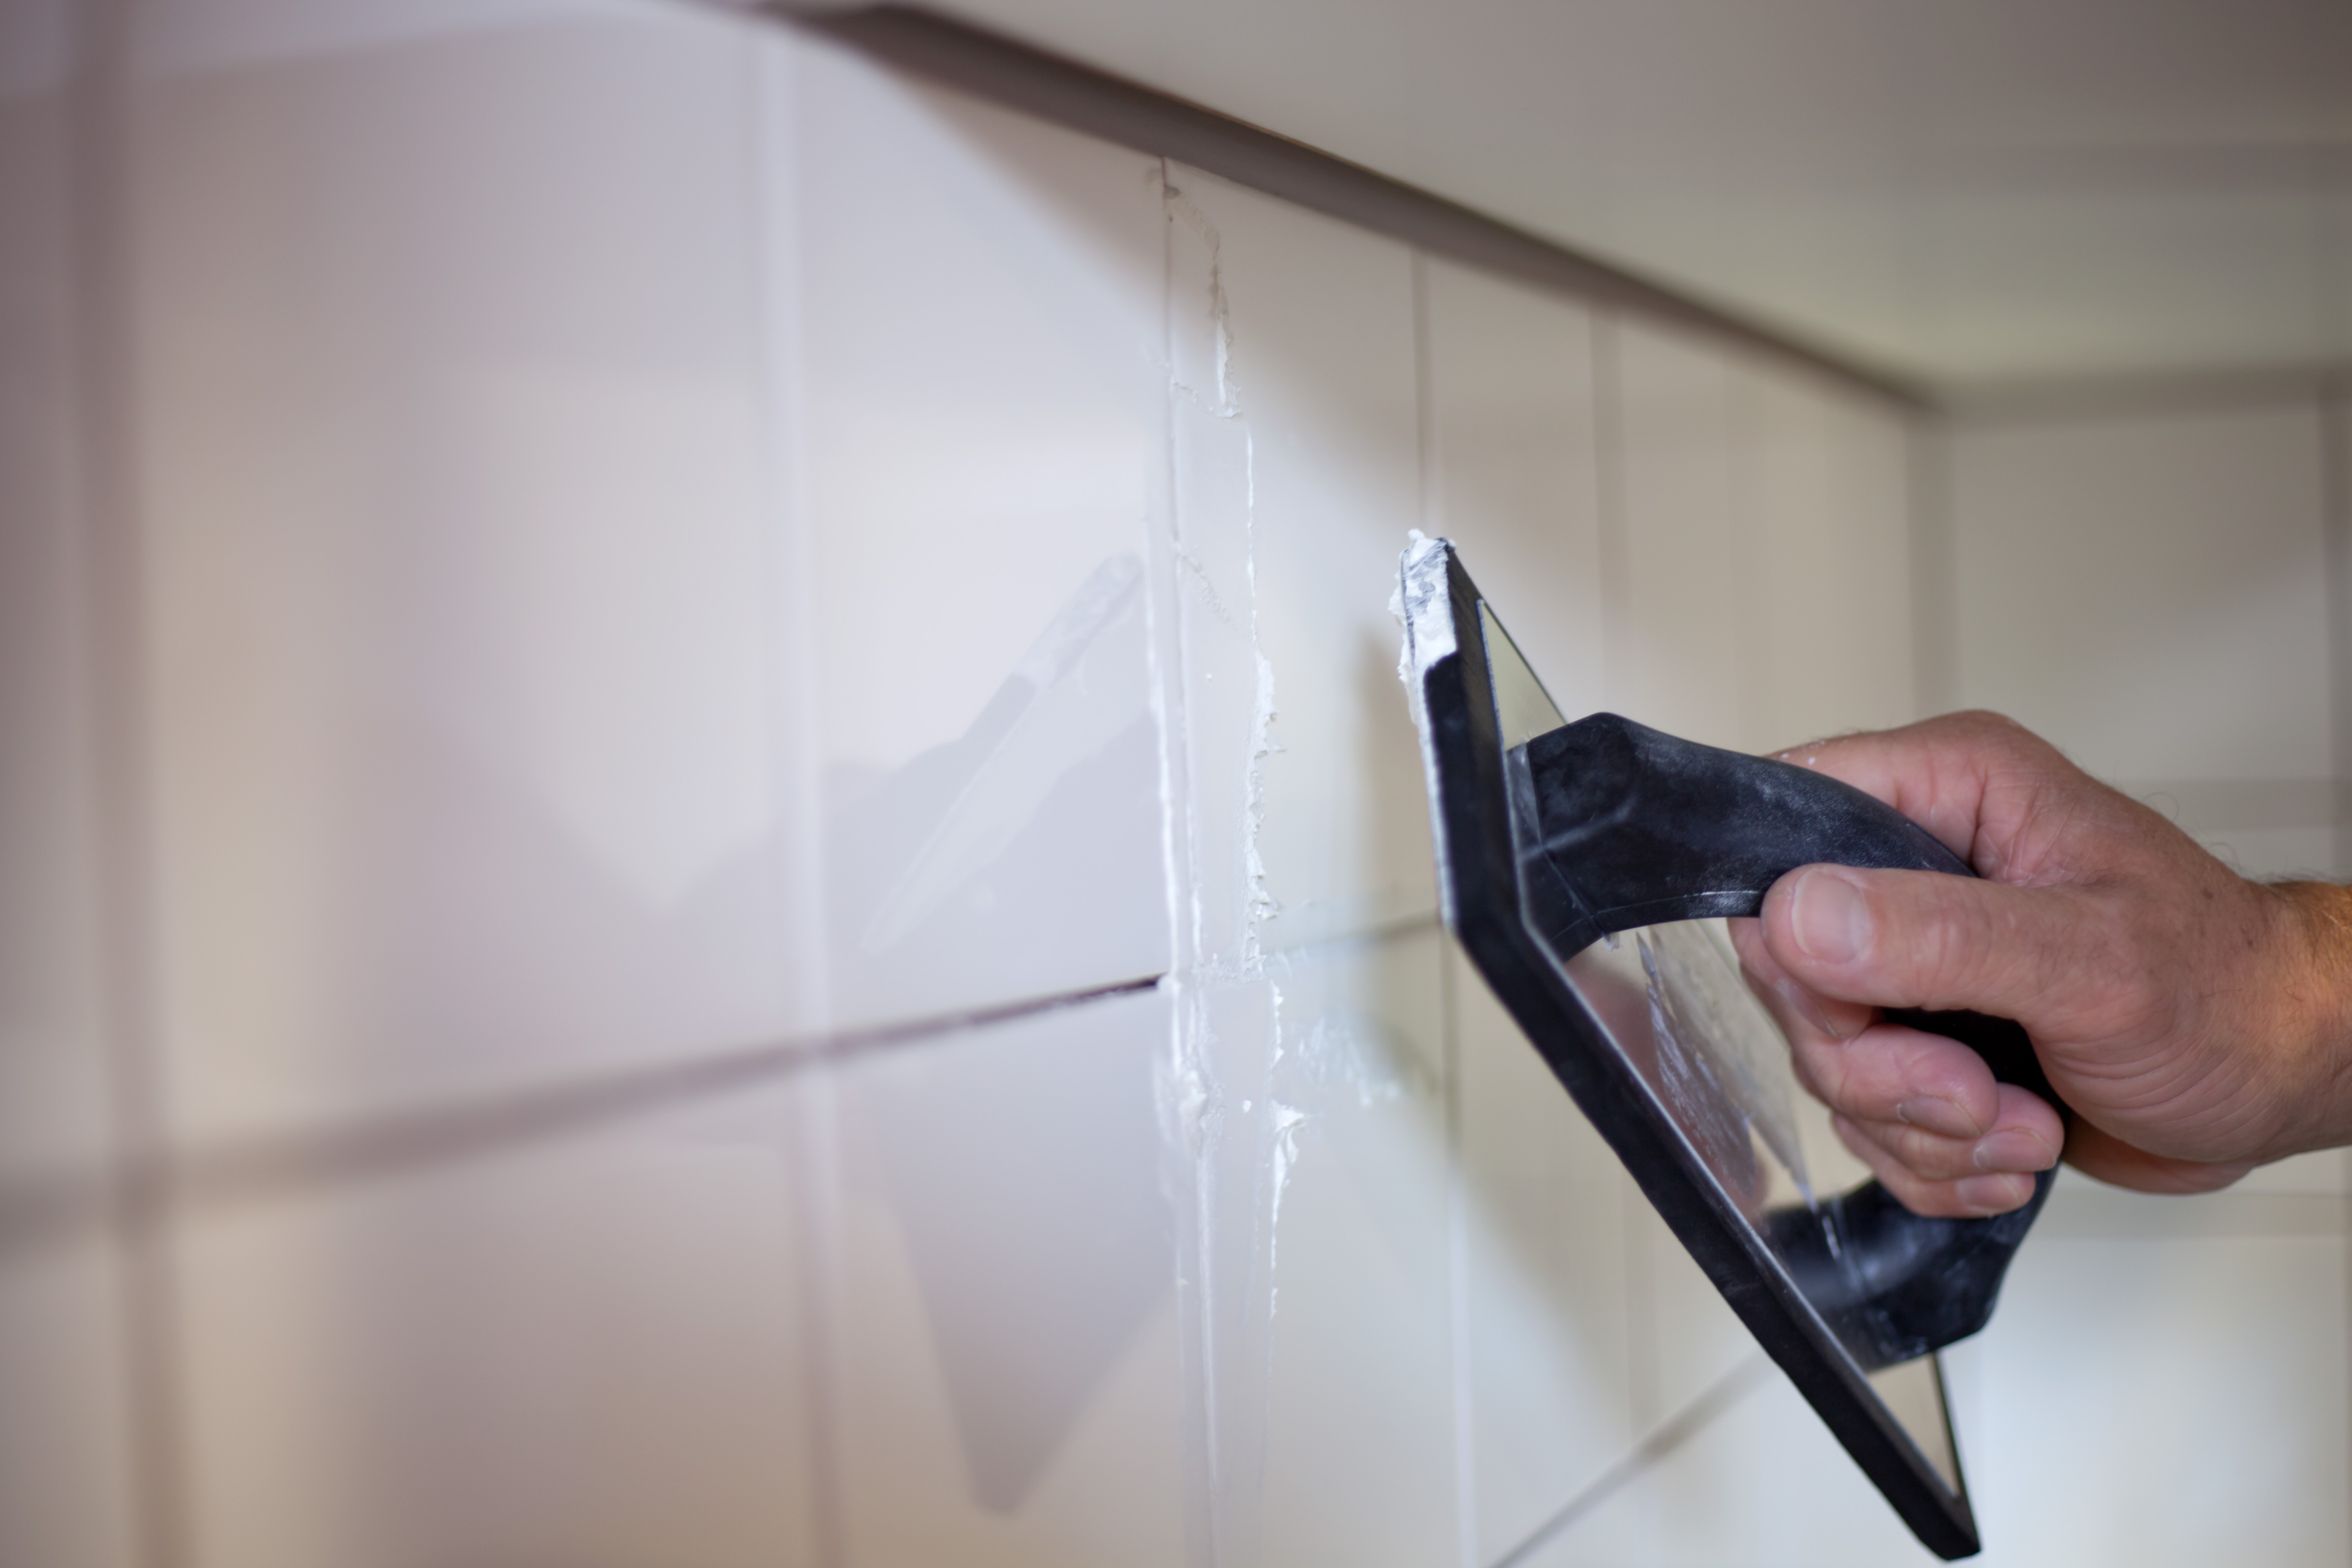 Why Does Grout Color Fade as It Dries? | Hunker